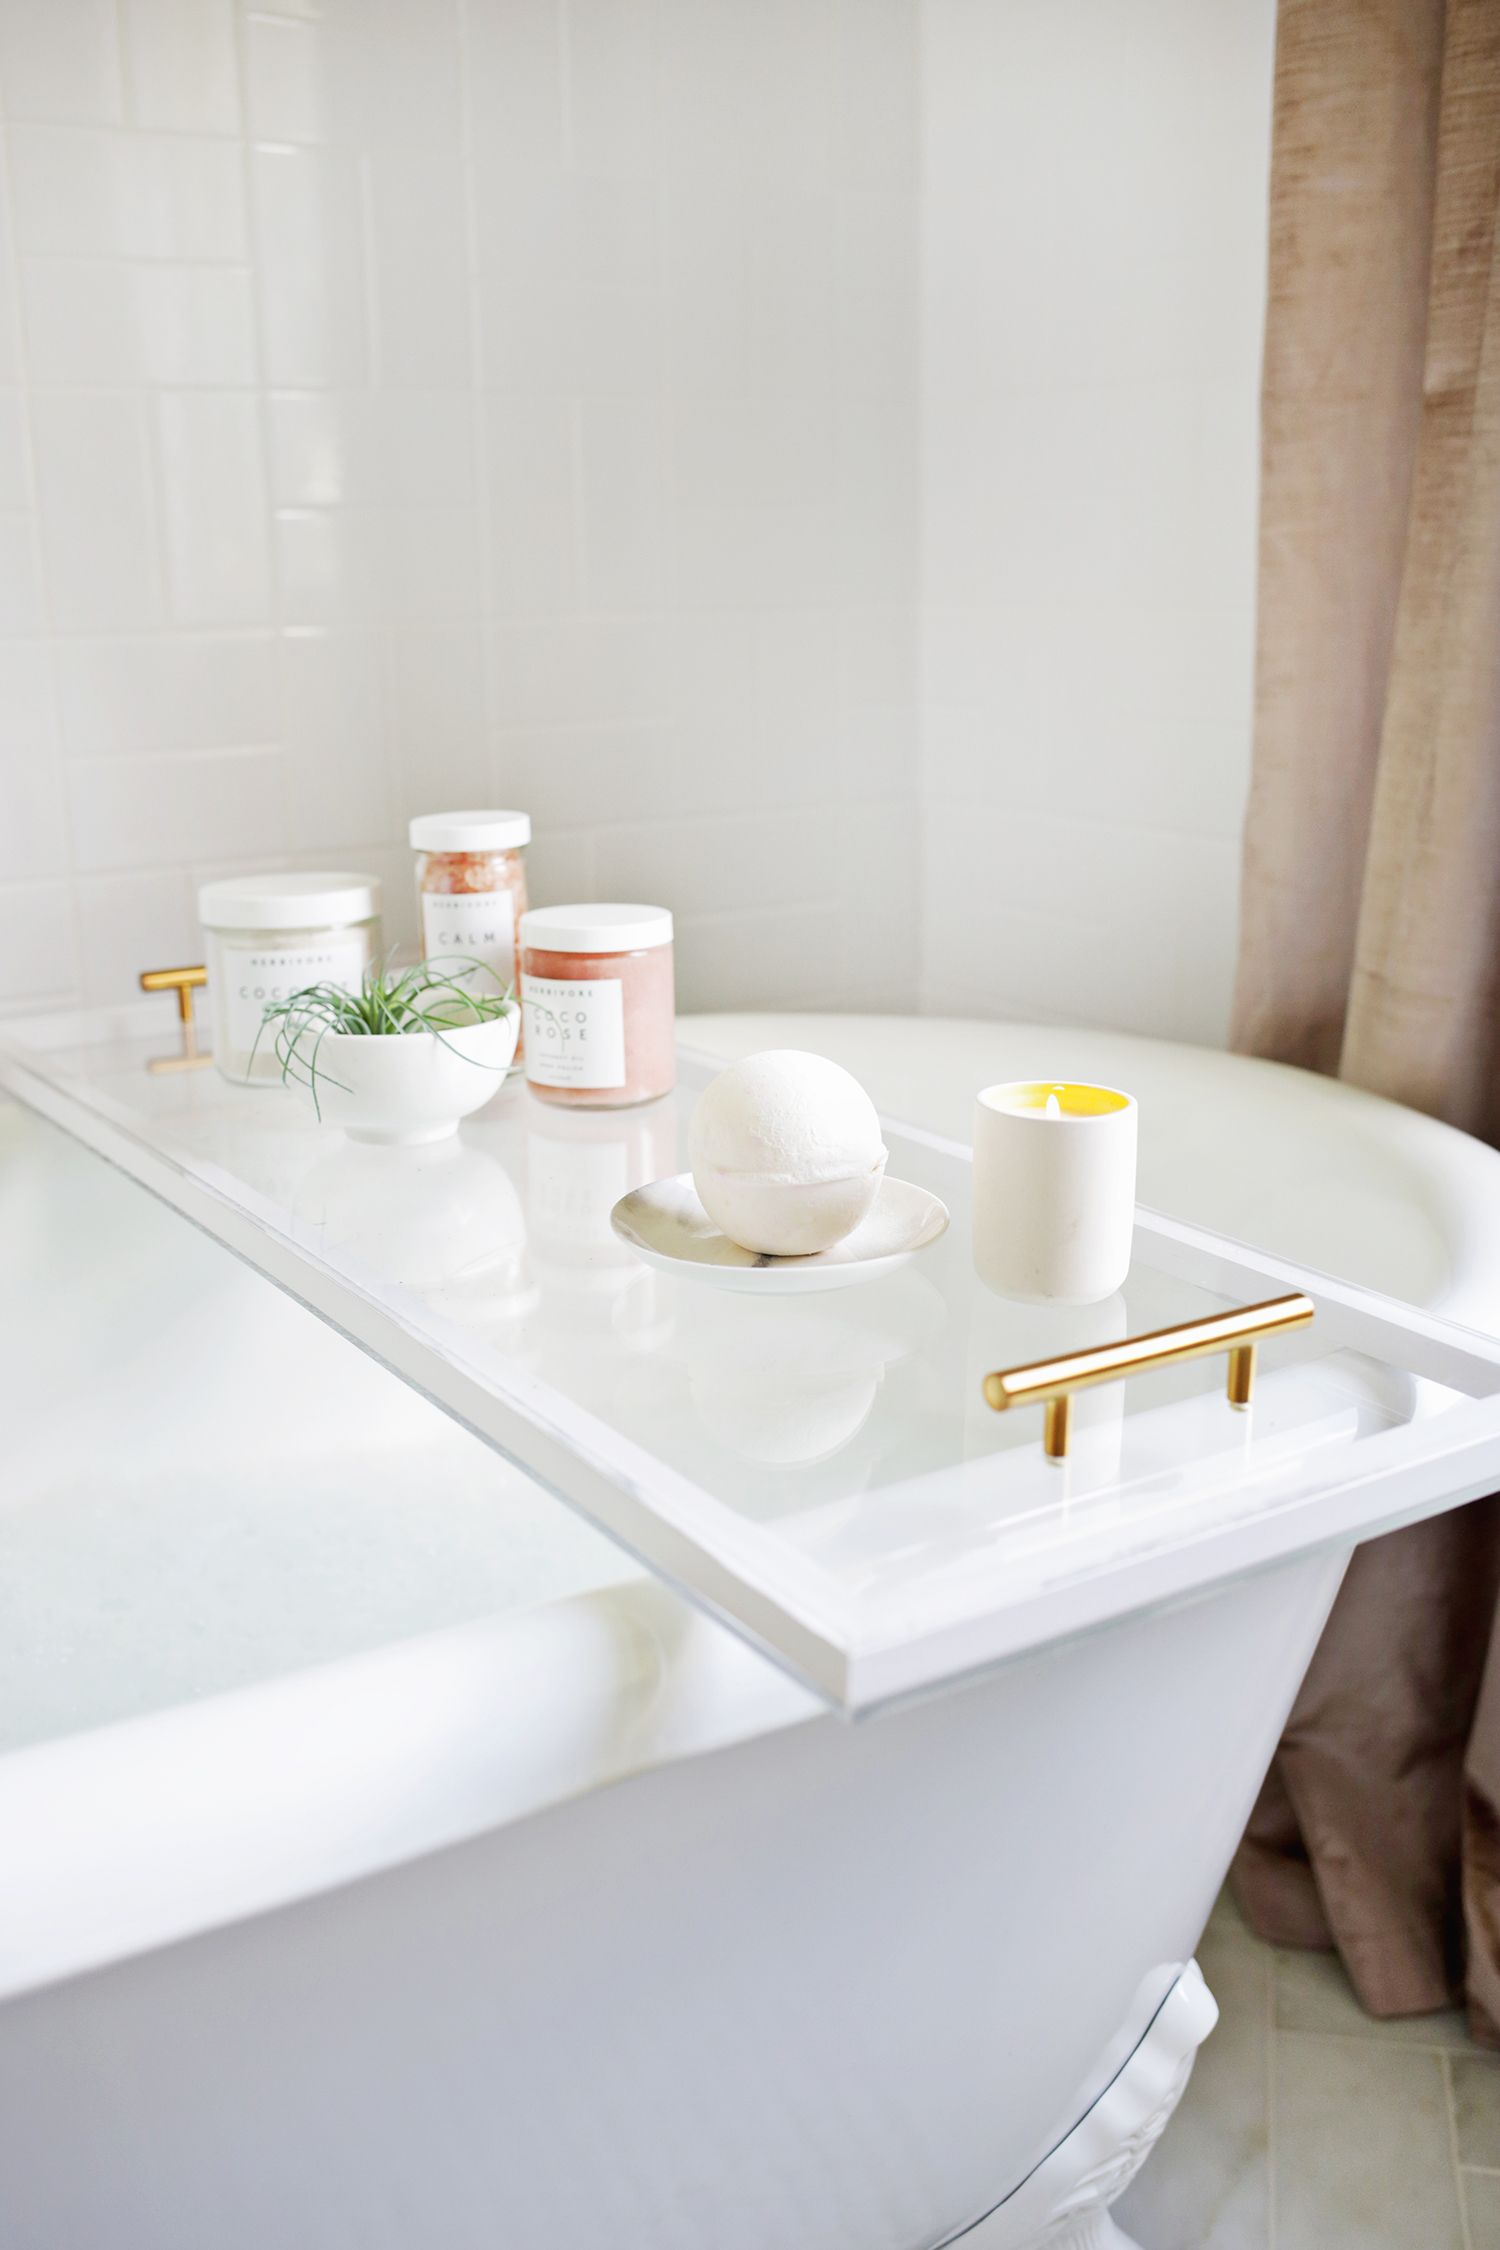 Diy Lucite Bathtub Caddy Diy Things Bathtub Decor